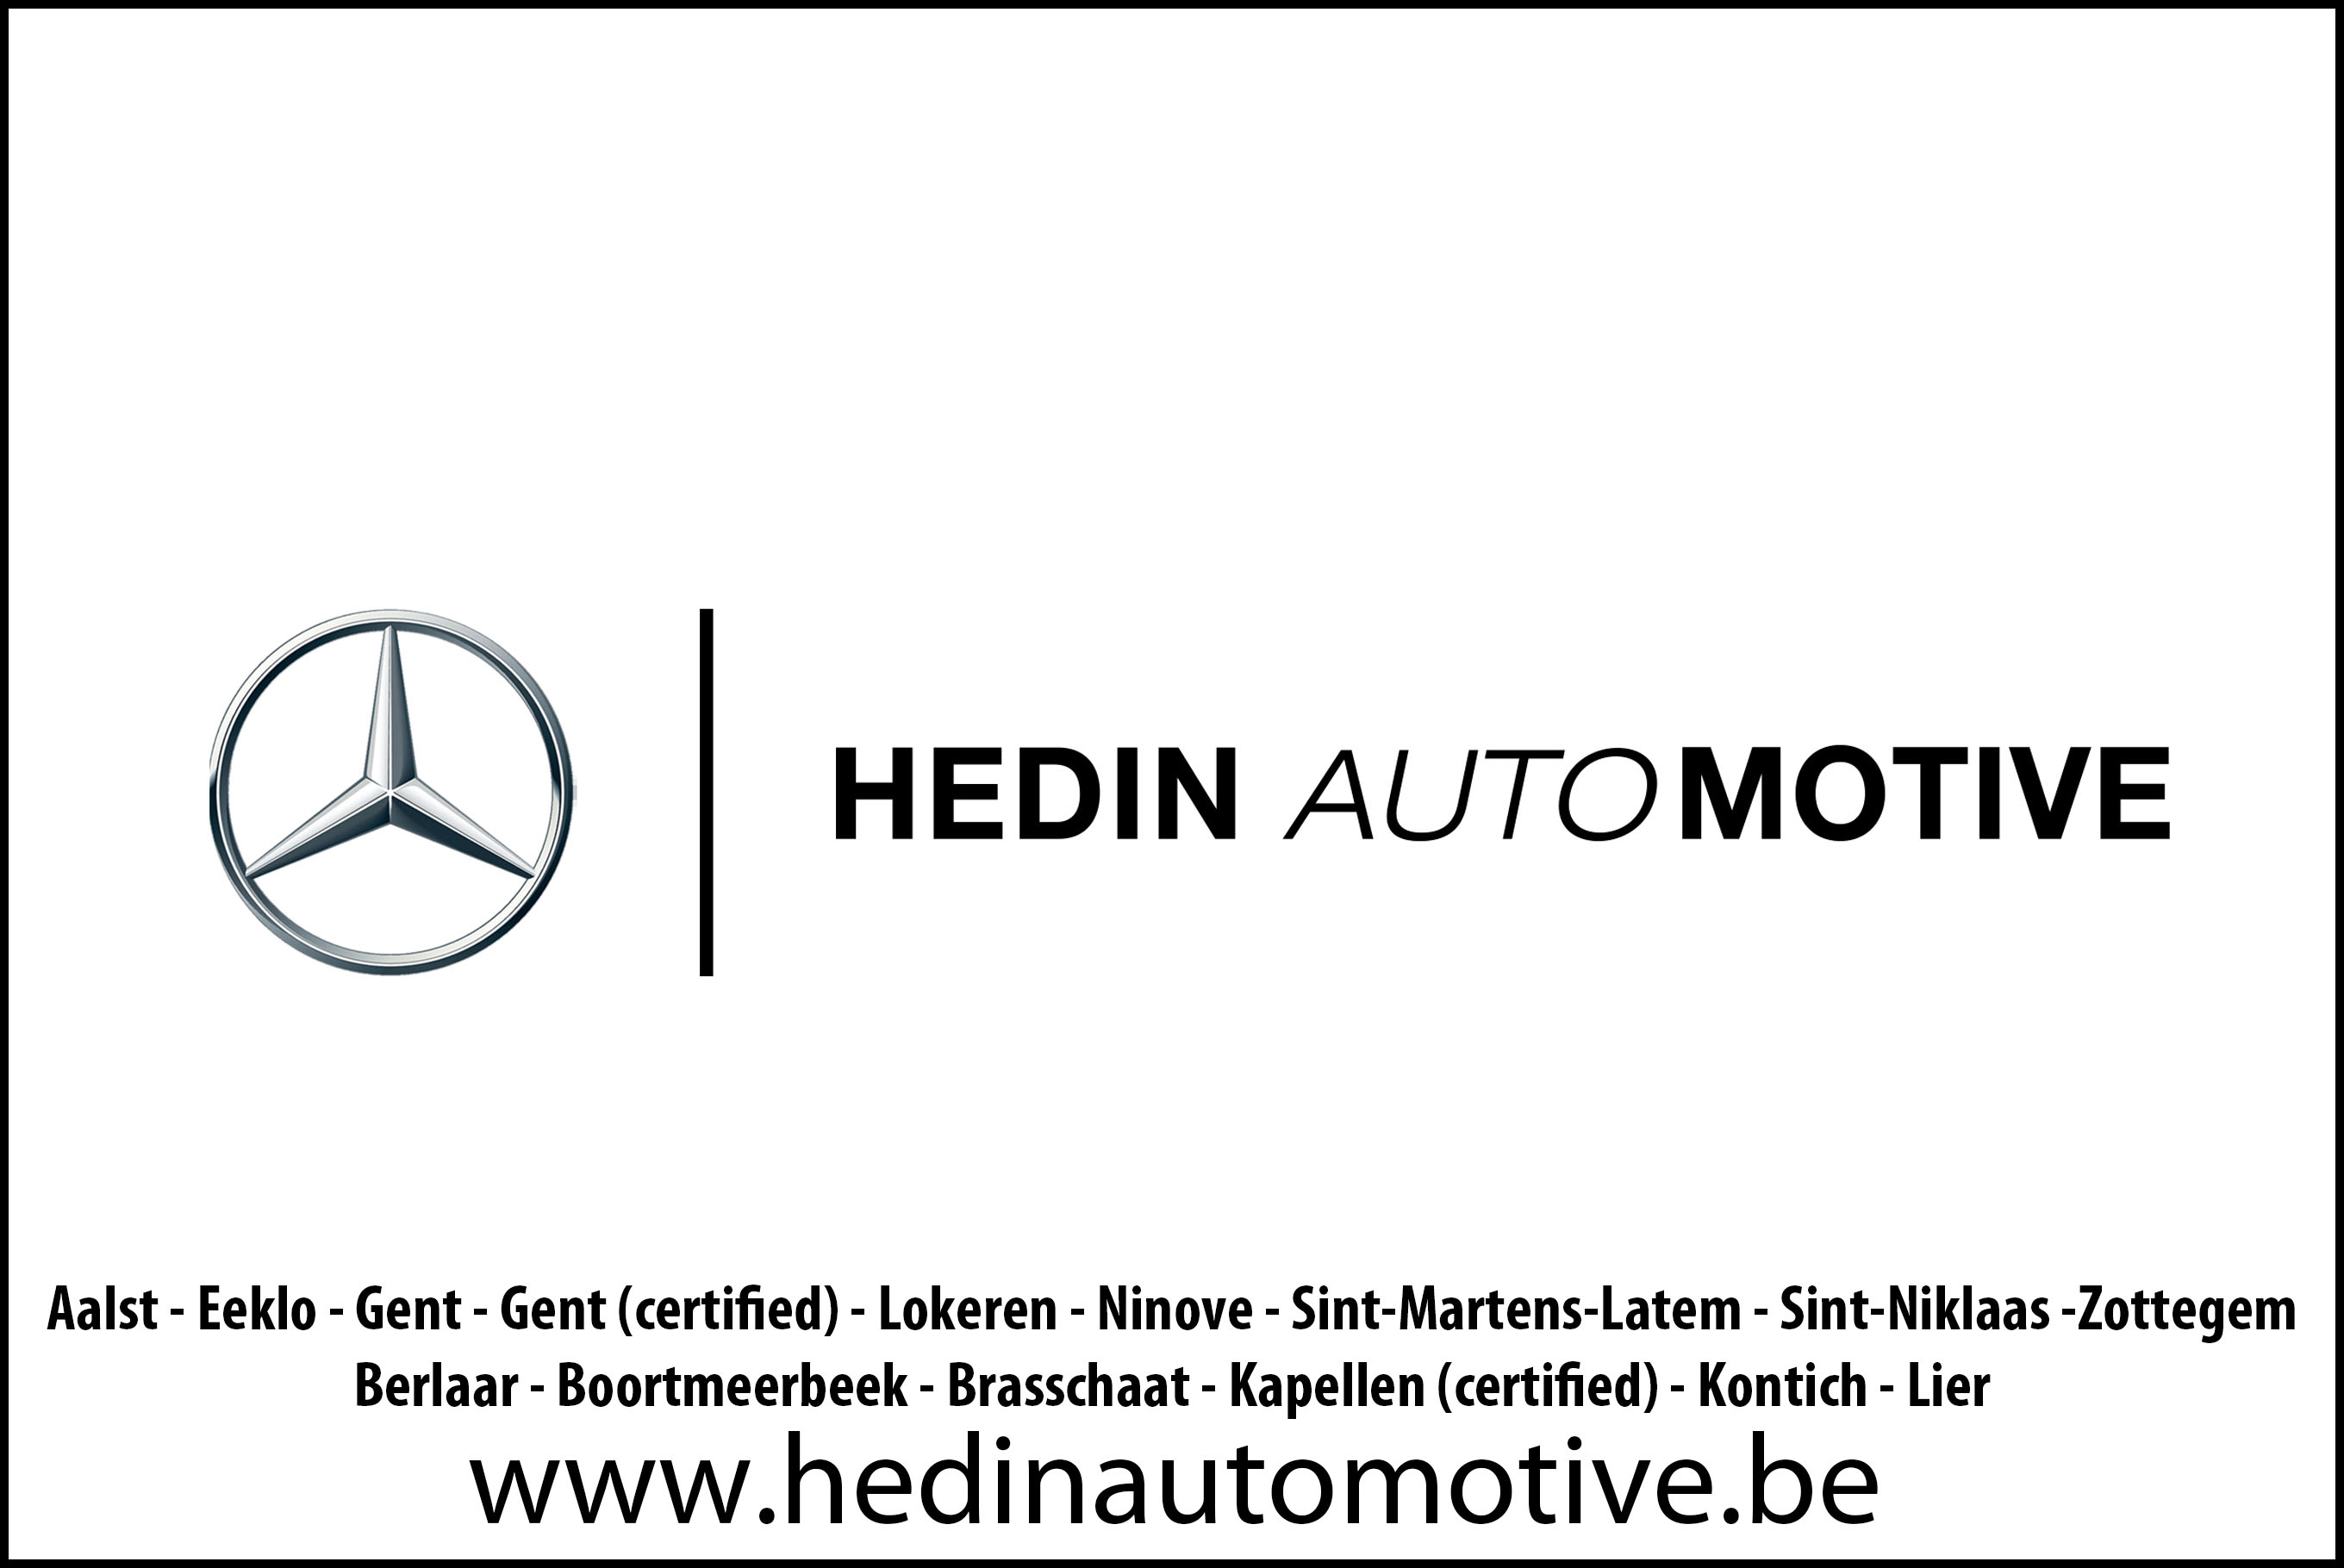 Hedinautomotive